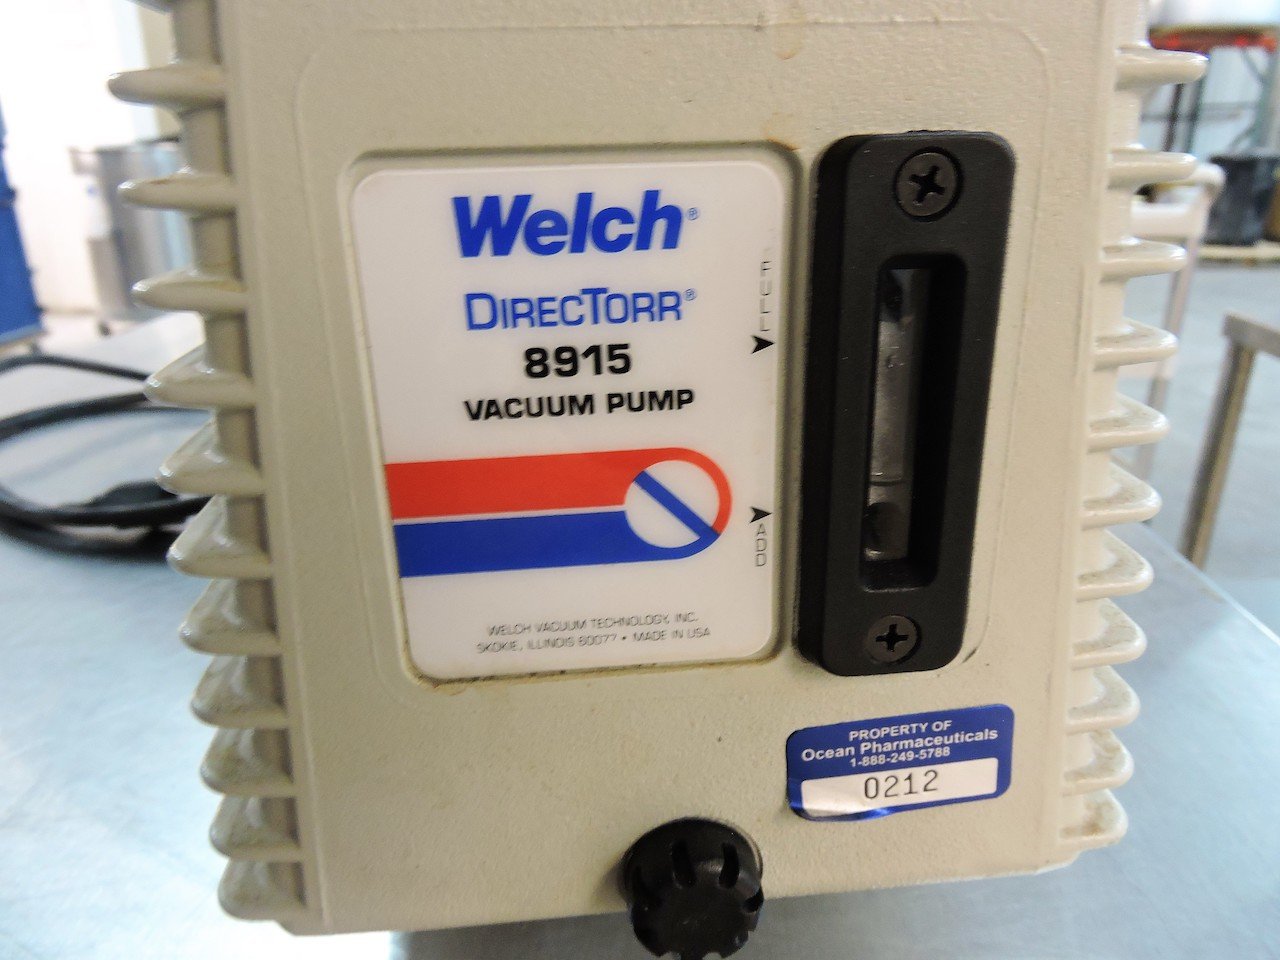 Lot 22 - WELCH 5 VACUUM PUMP DIRECTORR 8915 ½ HP